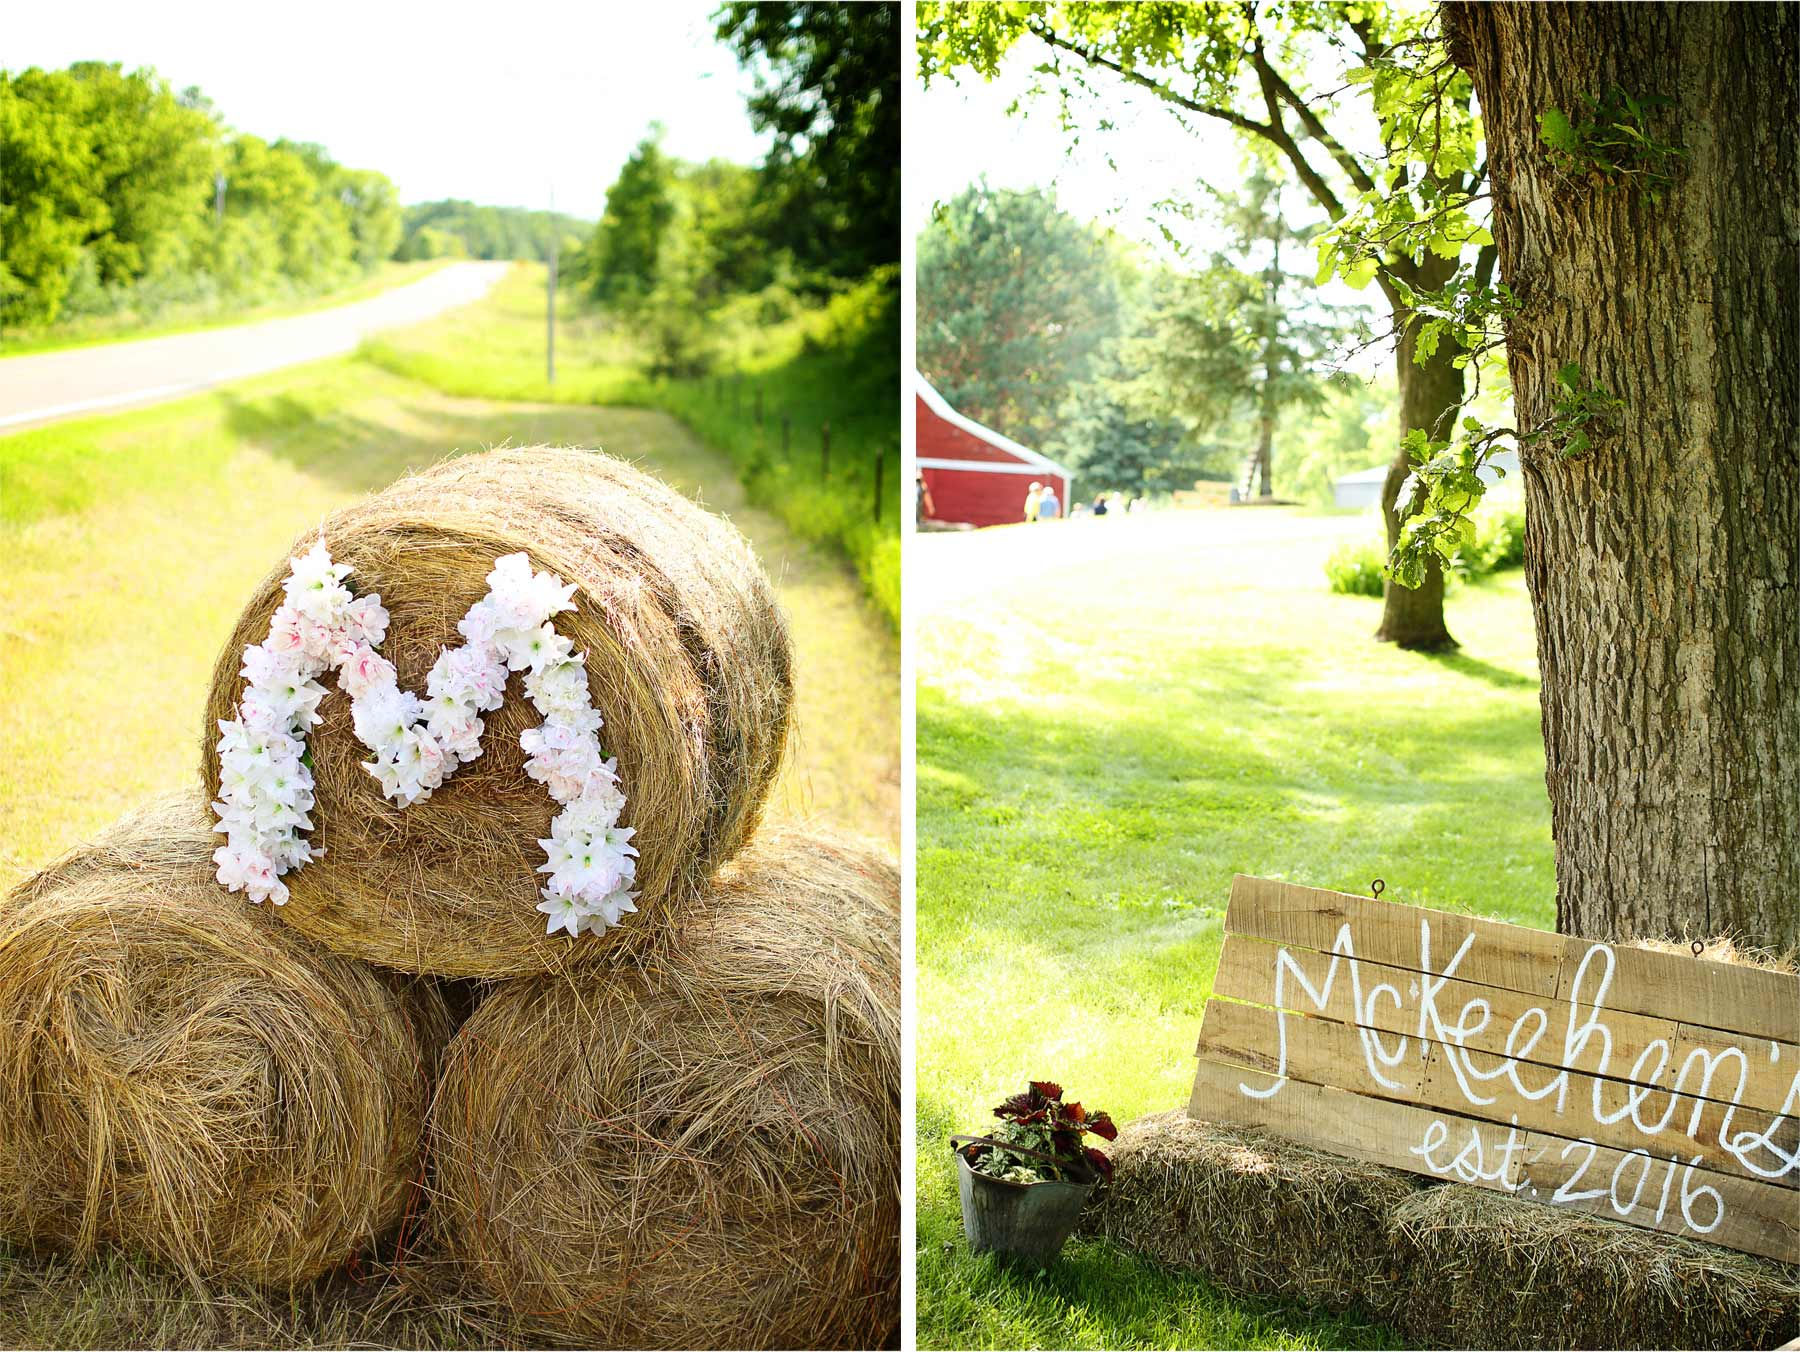 08-South-Haven-Minnesota-Wedding-Photographer-by-Andrew-Vick-Photography-Summer-Tomala-Farm-Welcome-Sign-Flowers-Hay-Bale-Details-Decorations-Renee-and-Bobb.jpg